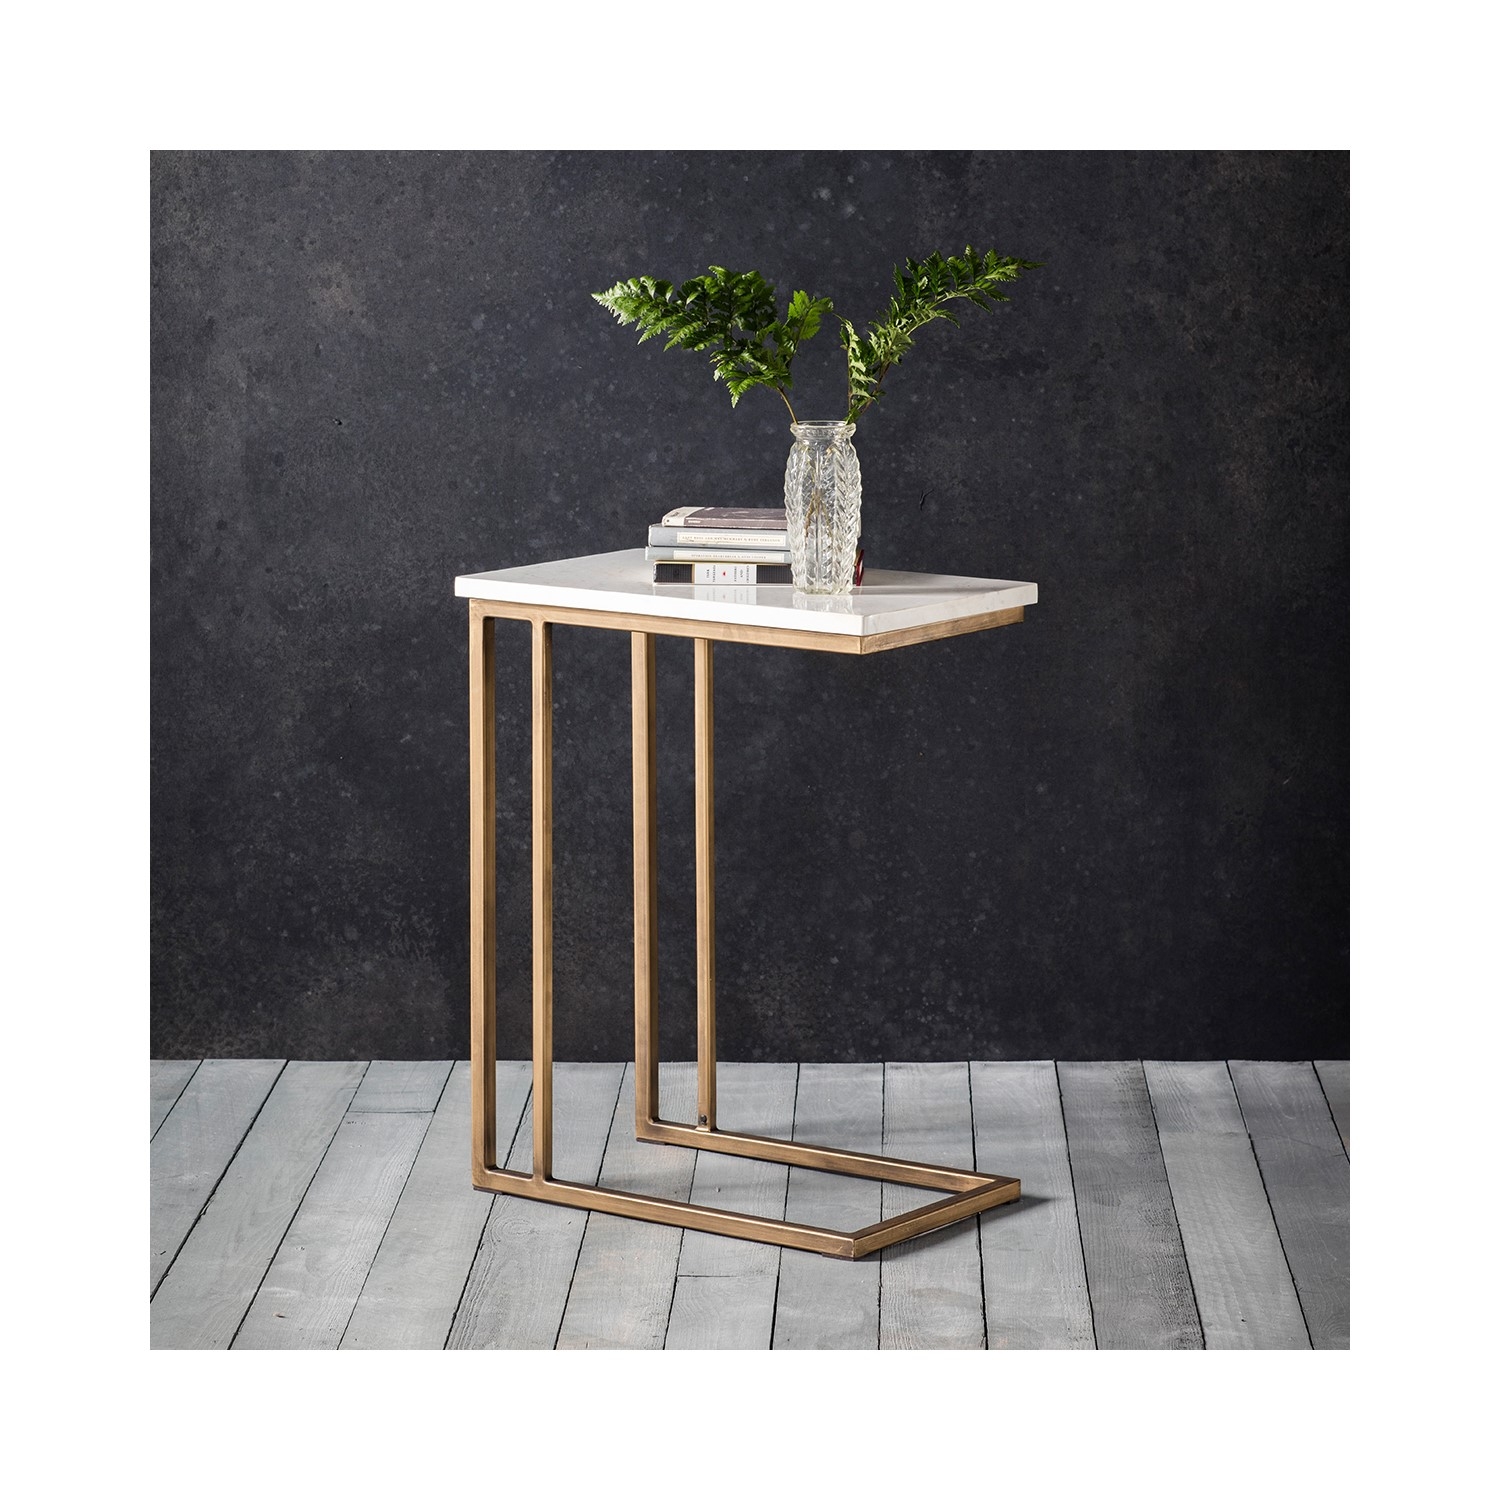 Grade A1 Hudson Living Cleo Sofa Side Table With White Marble Top Metallic Gold Legs Furniture123